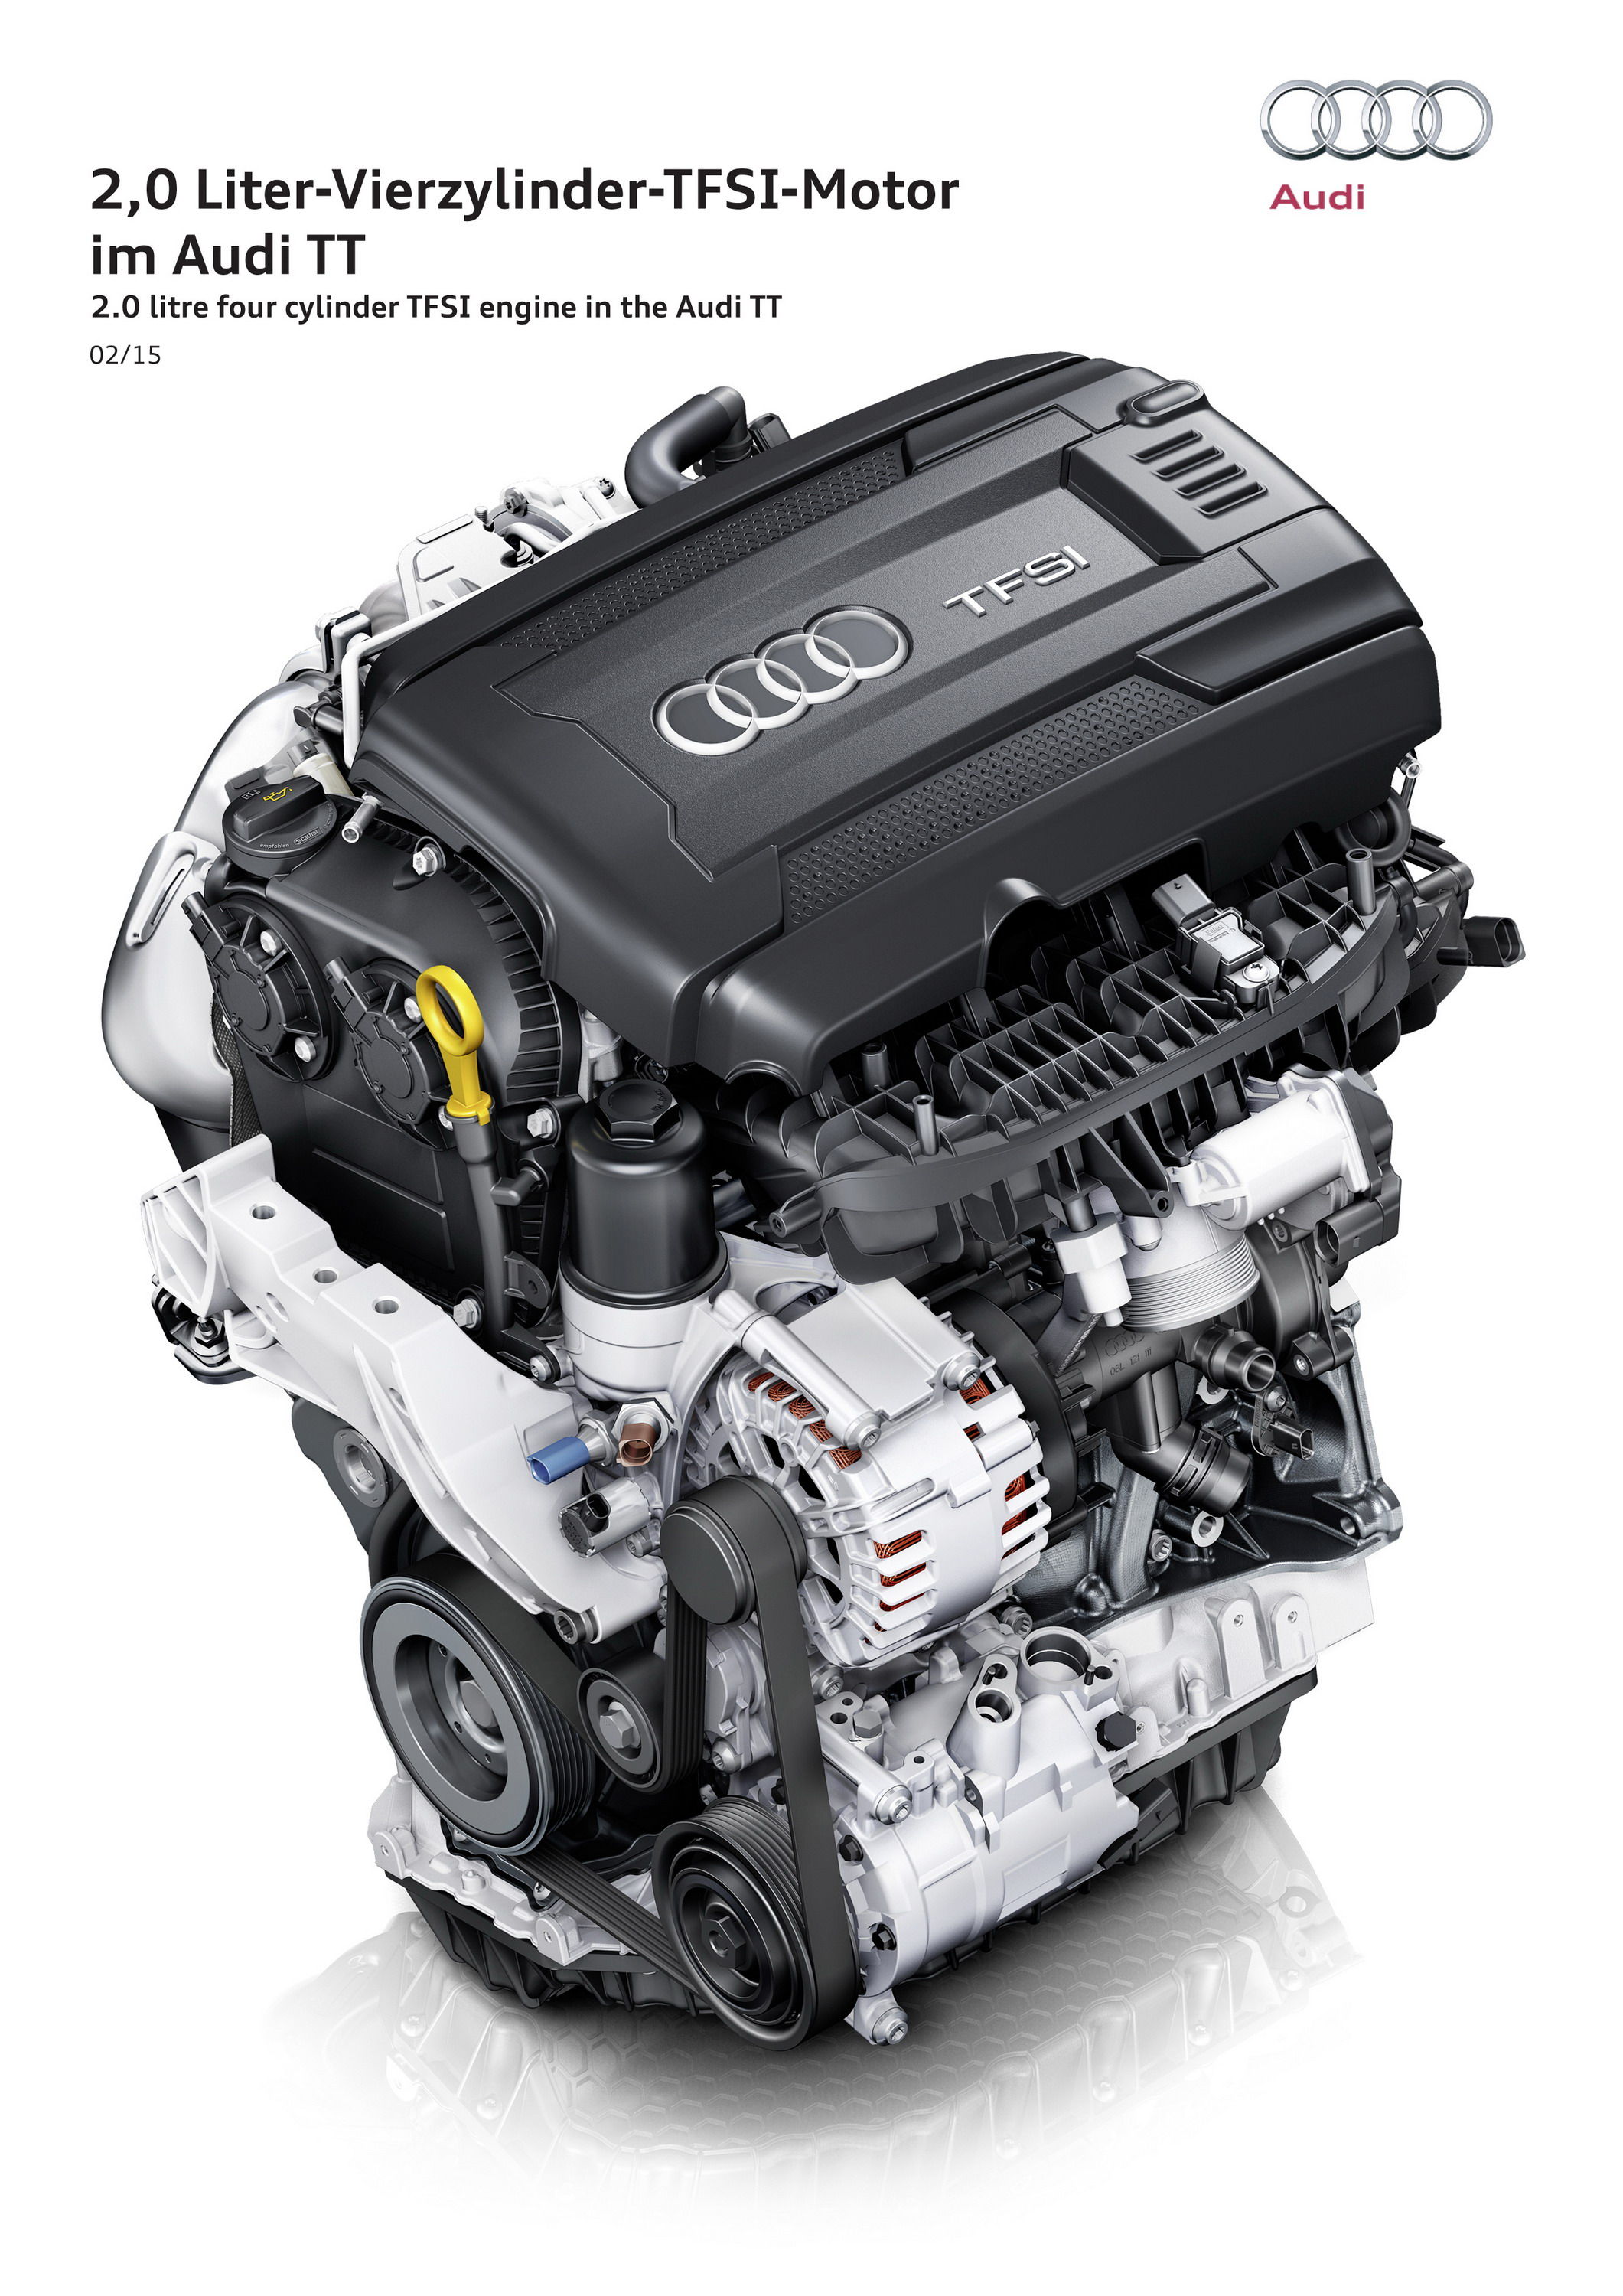 Audi A4 Top Speed 2016 The Car 2 0 Engine Diagram It Source Residential Electrical Symbols